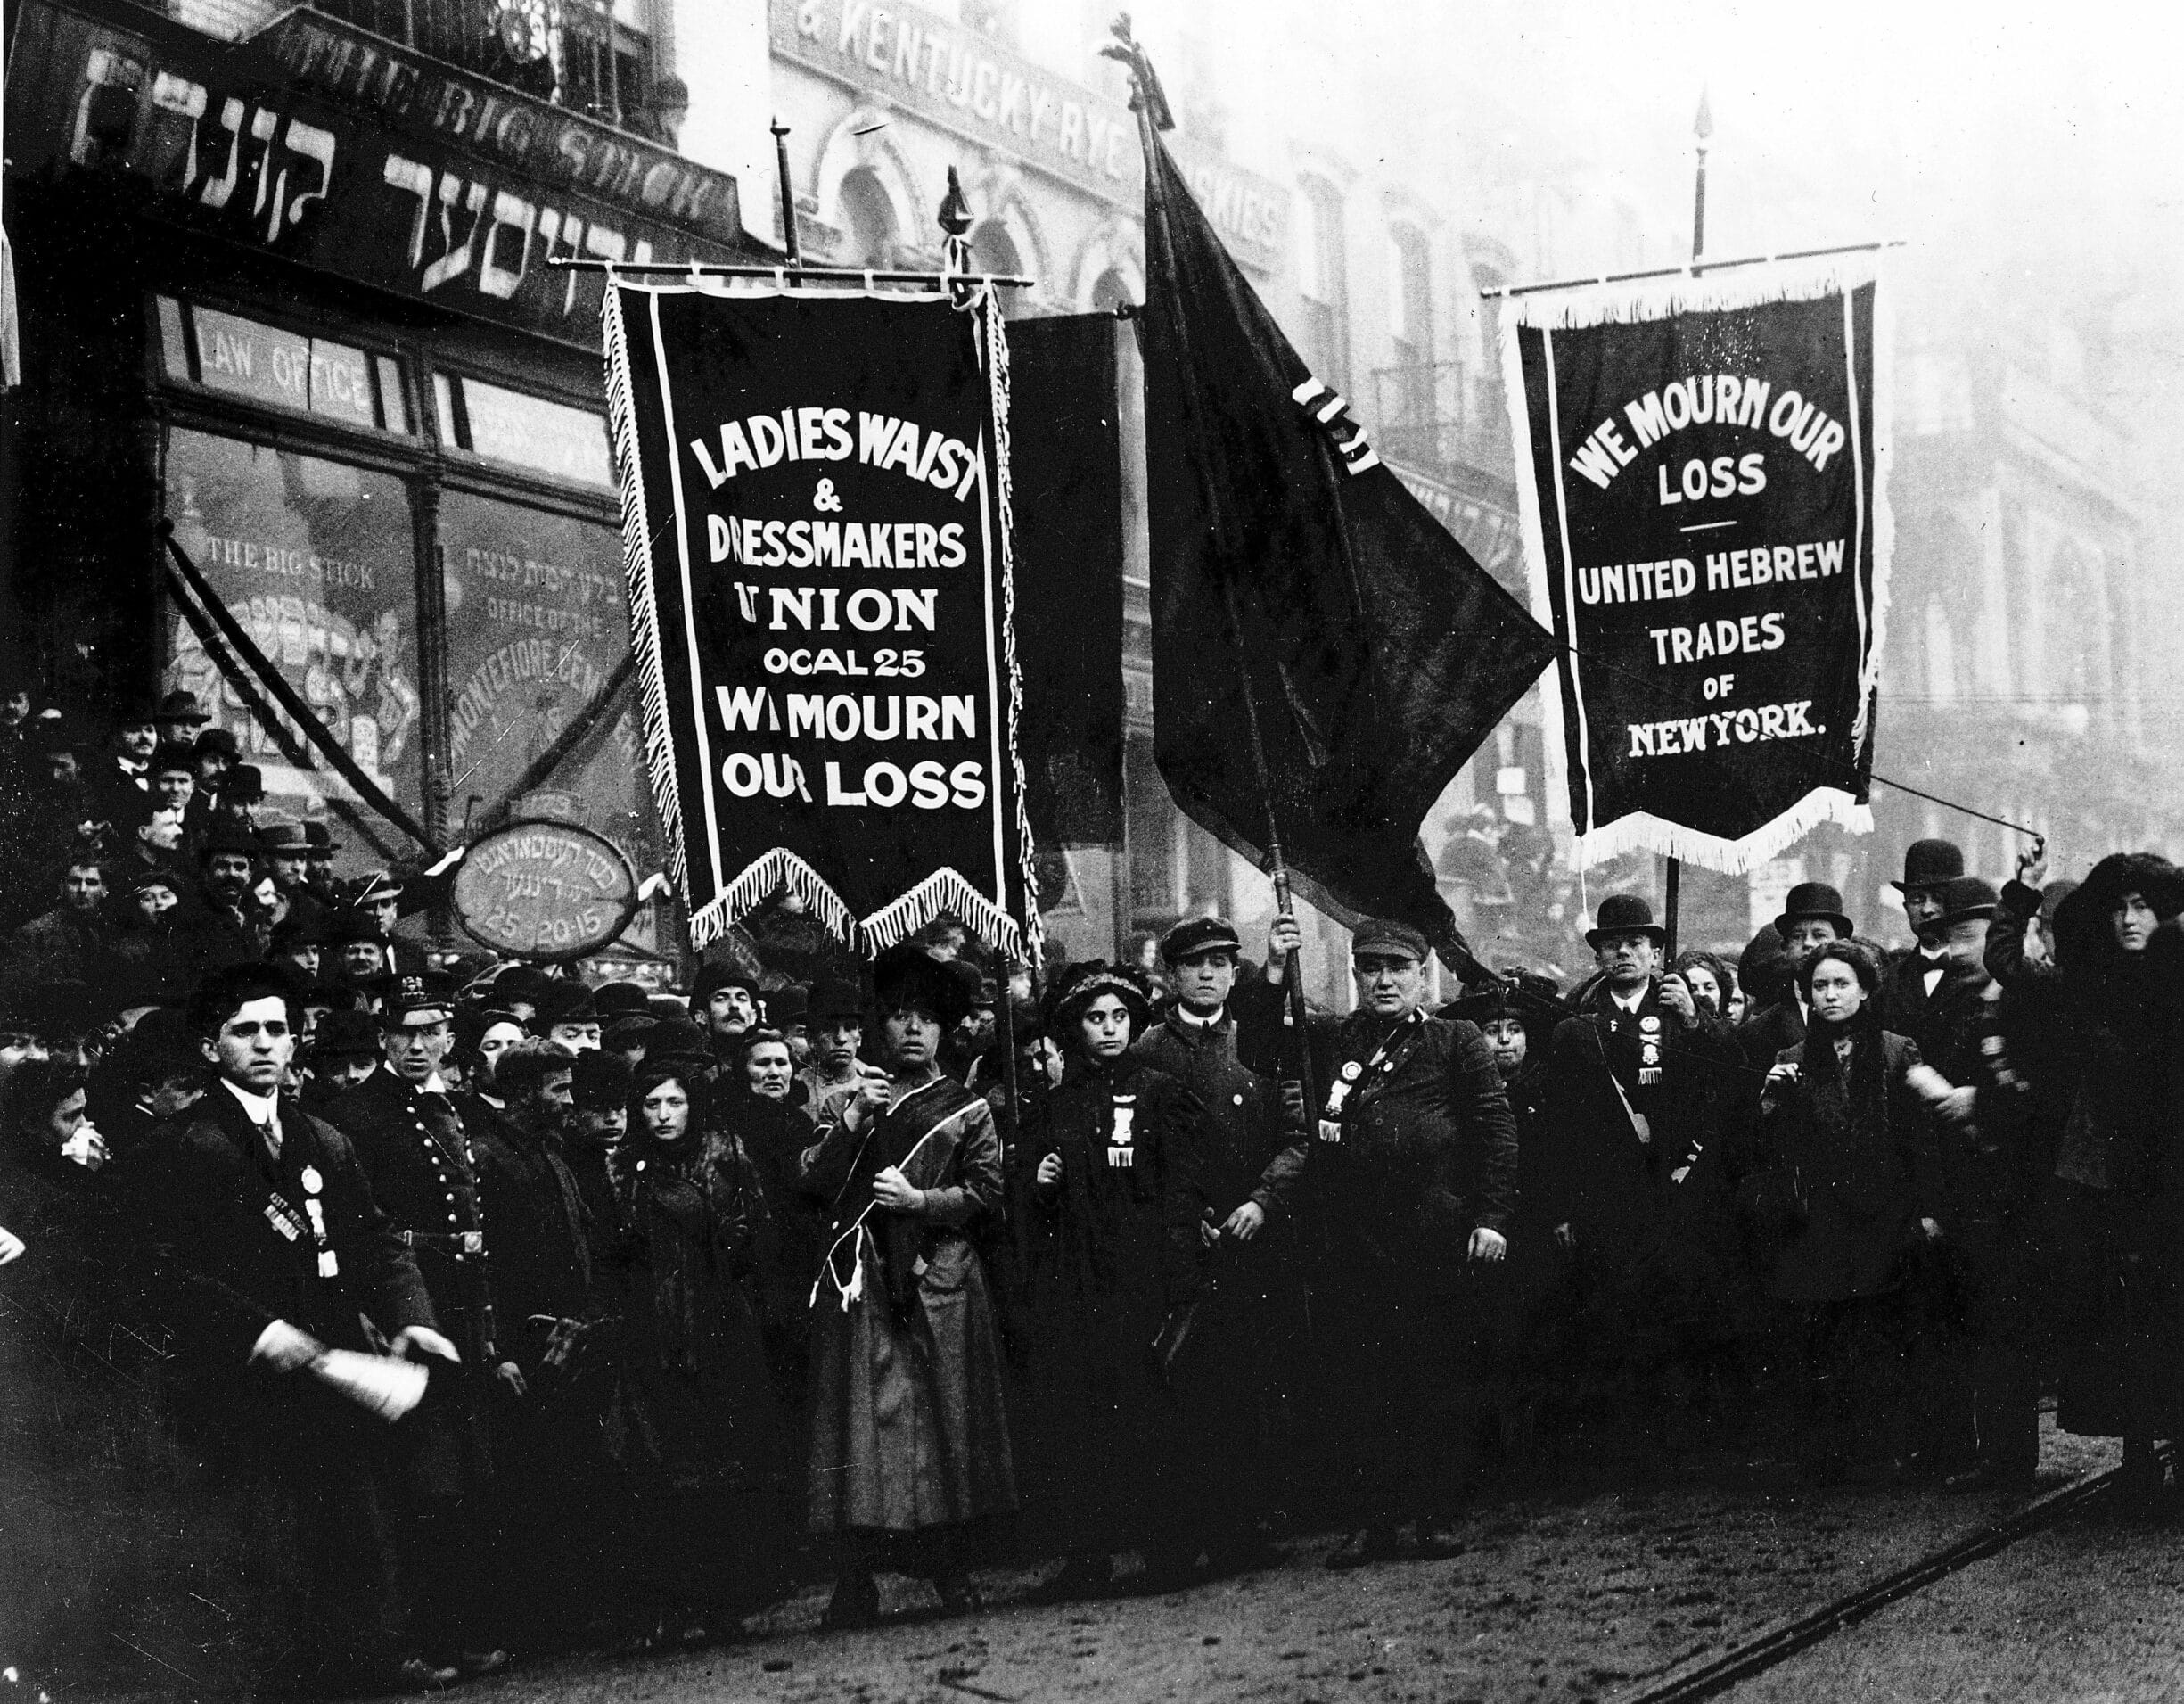 Mourners from the Ladies Waist and Dressmakers Union Local 25 and the United Hebrew Trades of New York march in the streets after the Triangle fire in 1911. Photo: Unknown. Collection: International Ladies Garment Workers Union Photographs (1885-1985) Repository: The Kheel Center for Labor-Management Documentation and Archives. (CC BY 2.0).